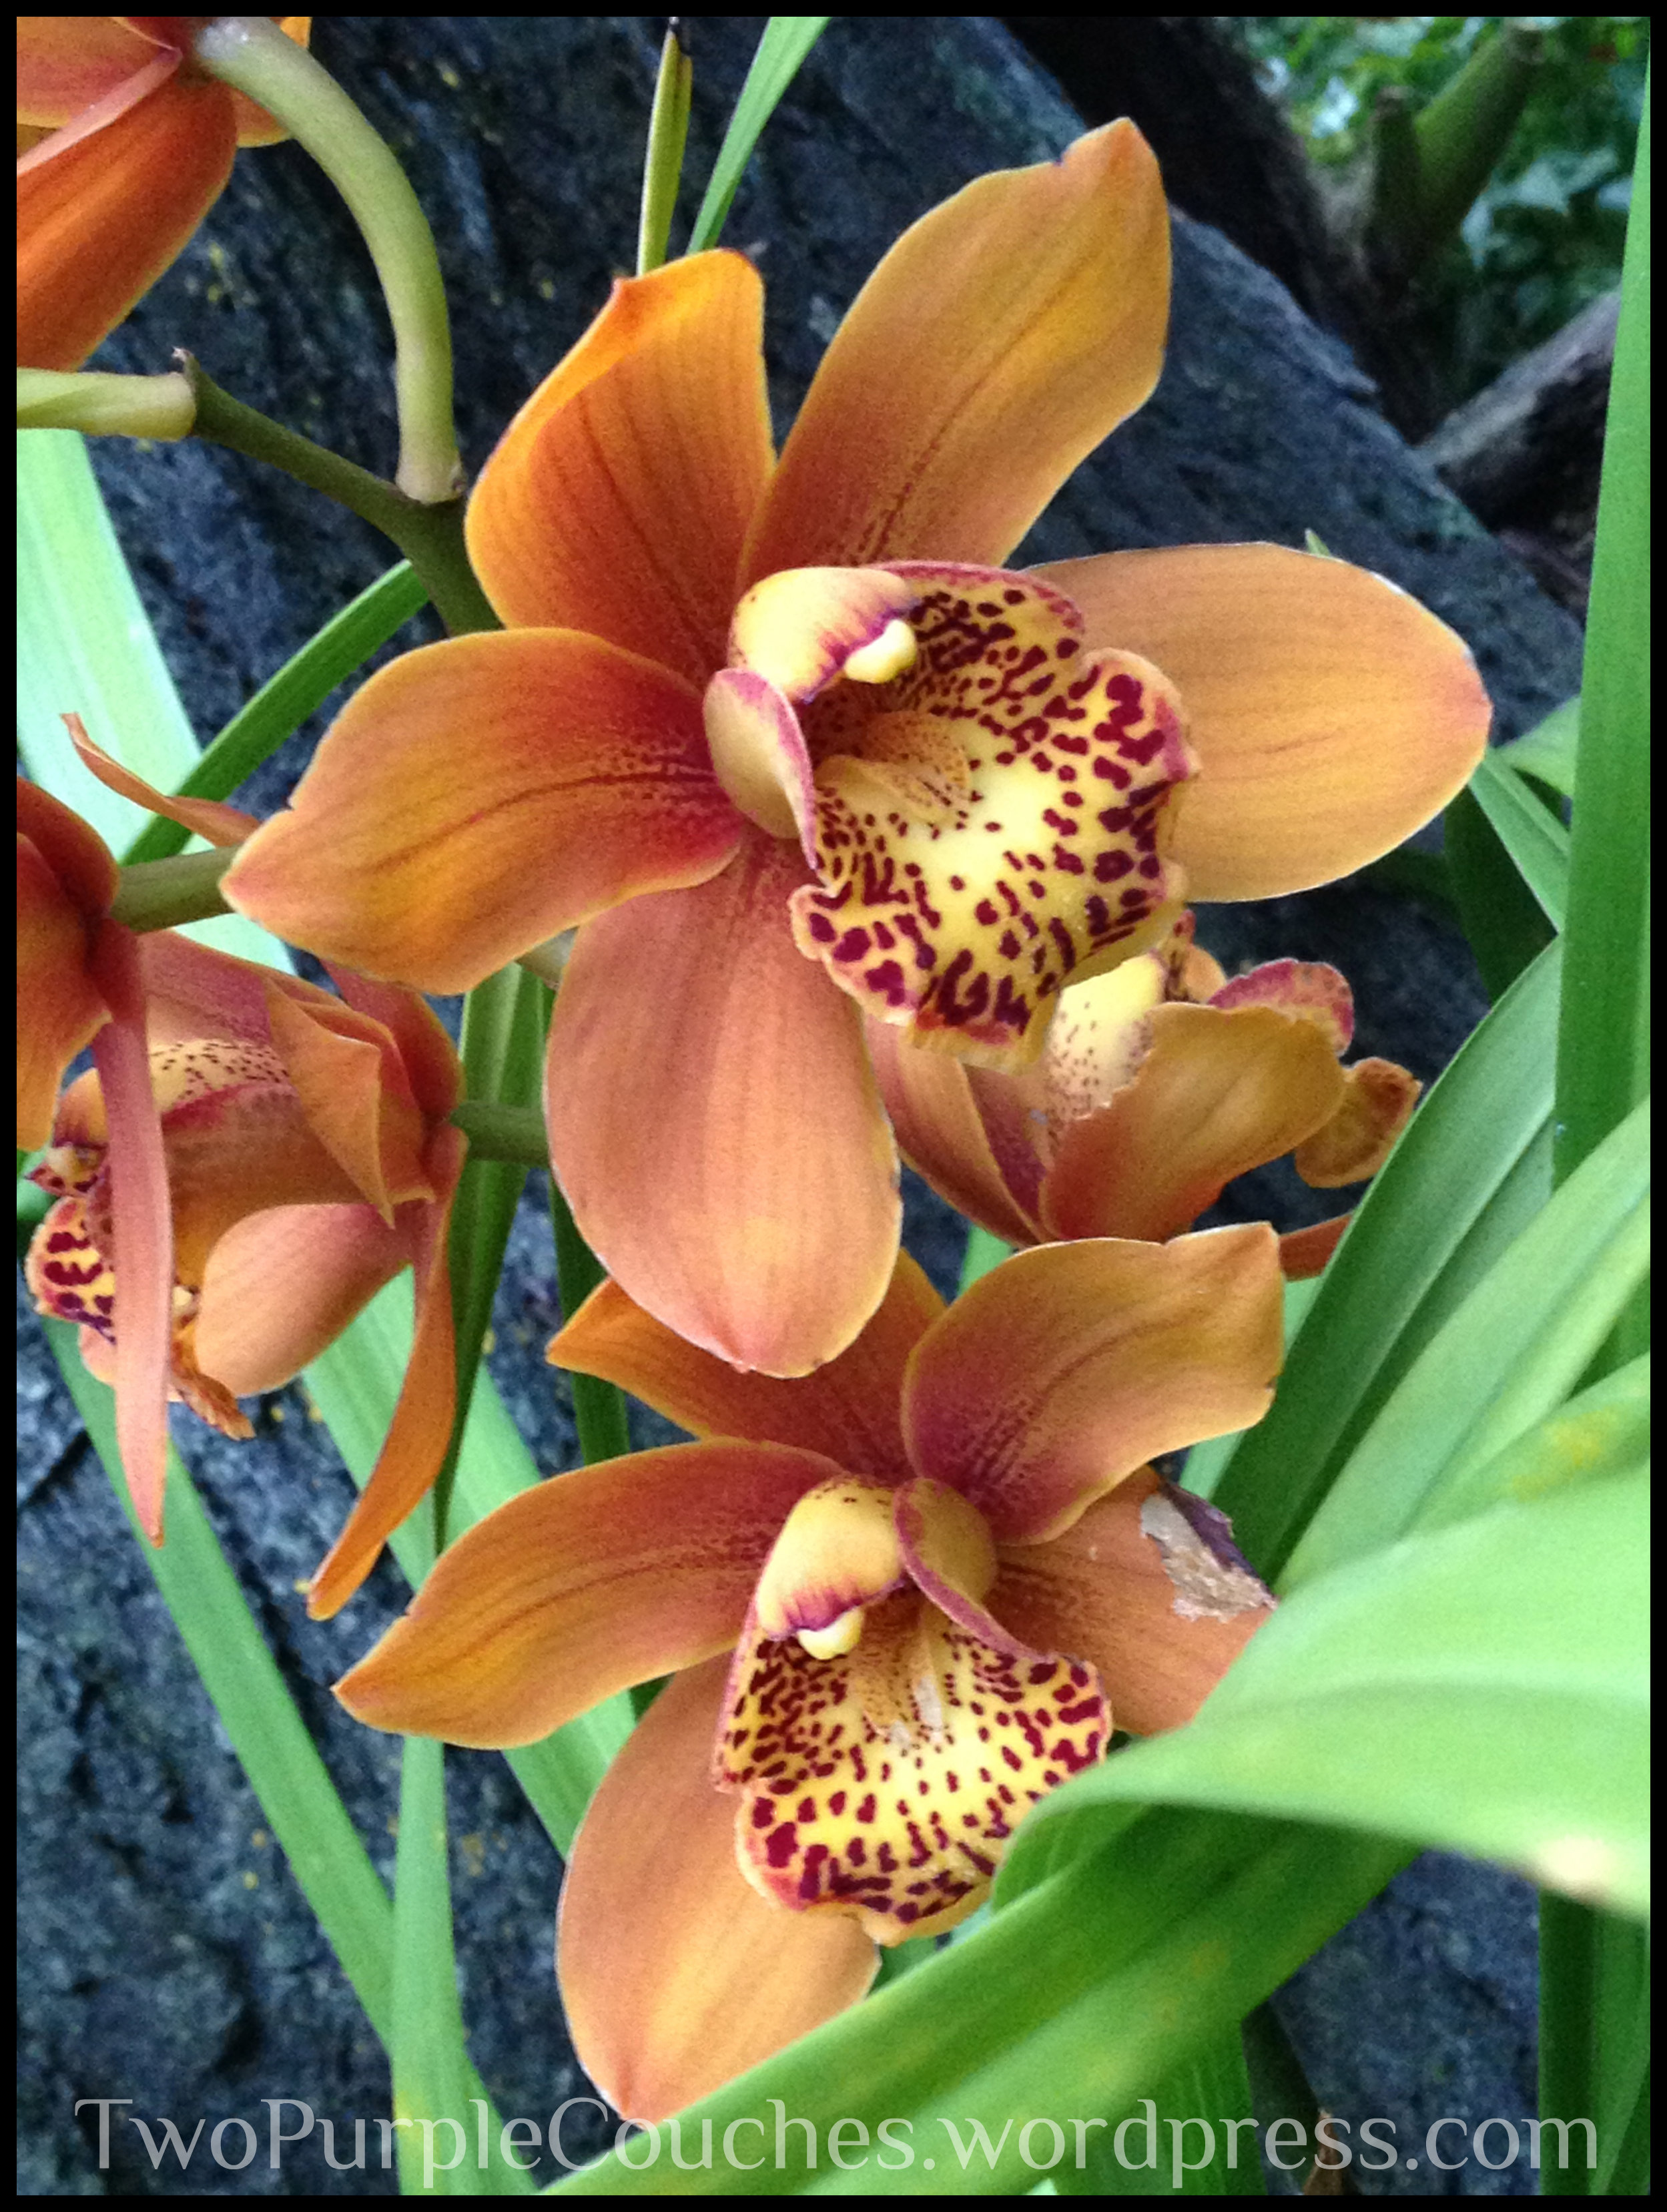 orange orchid - Two Purple Couches